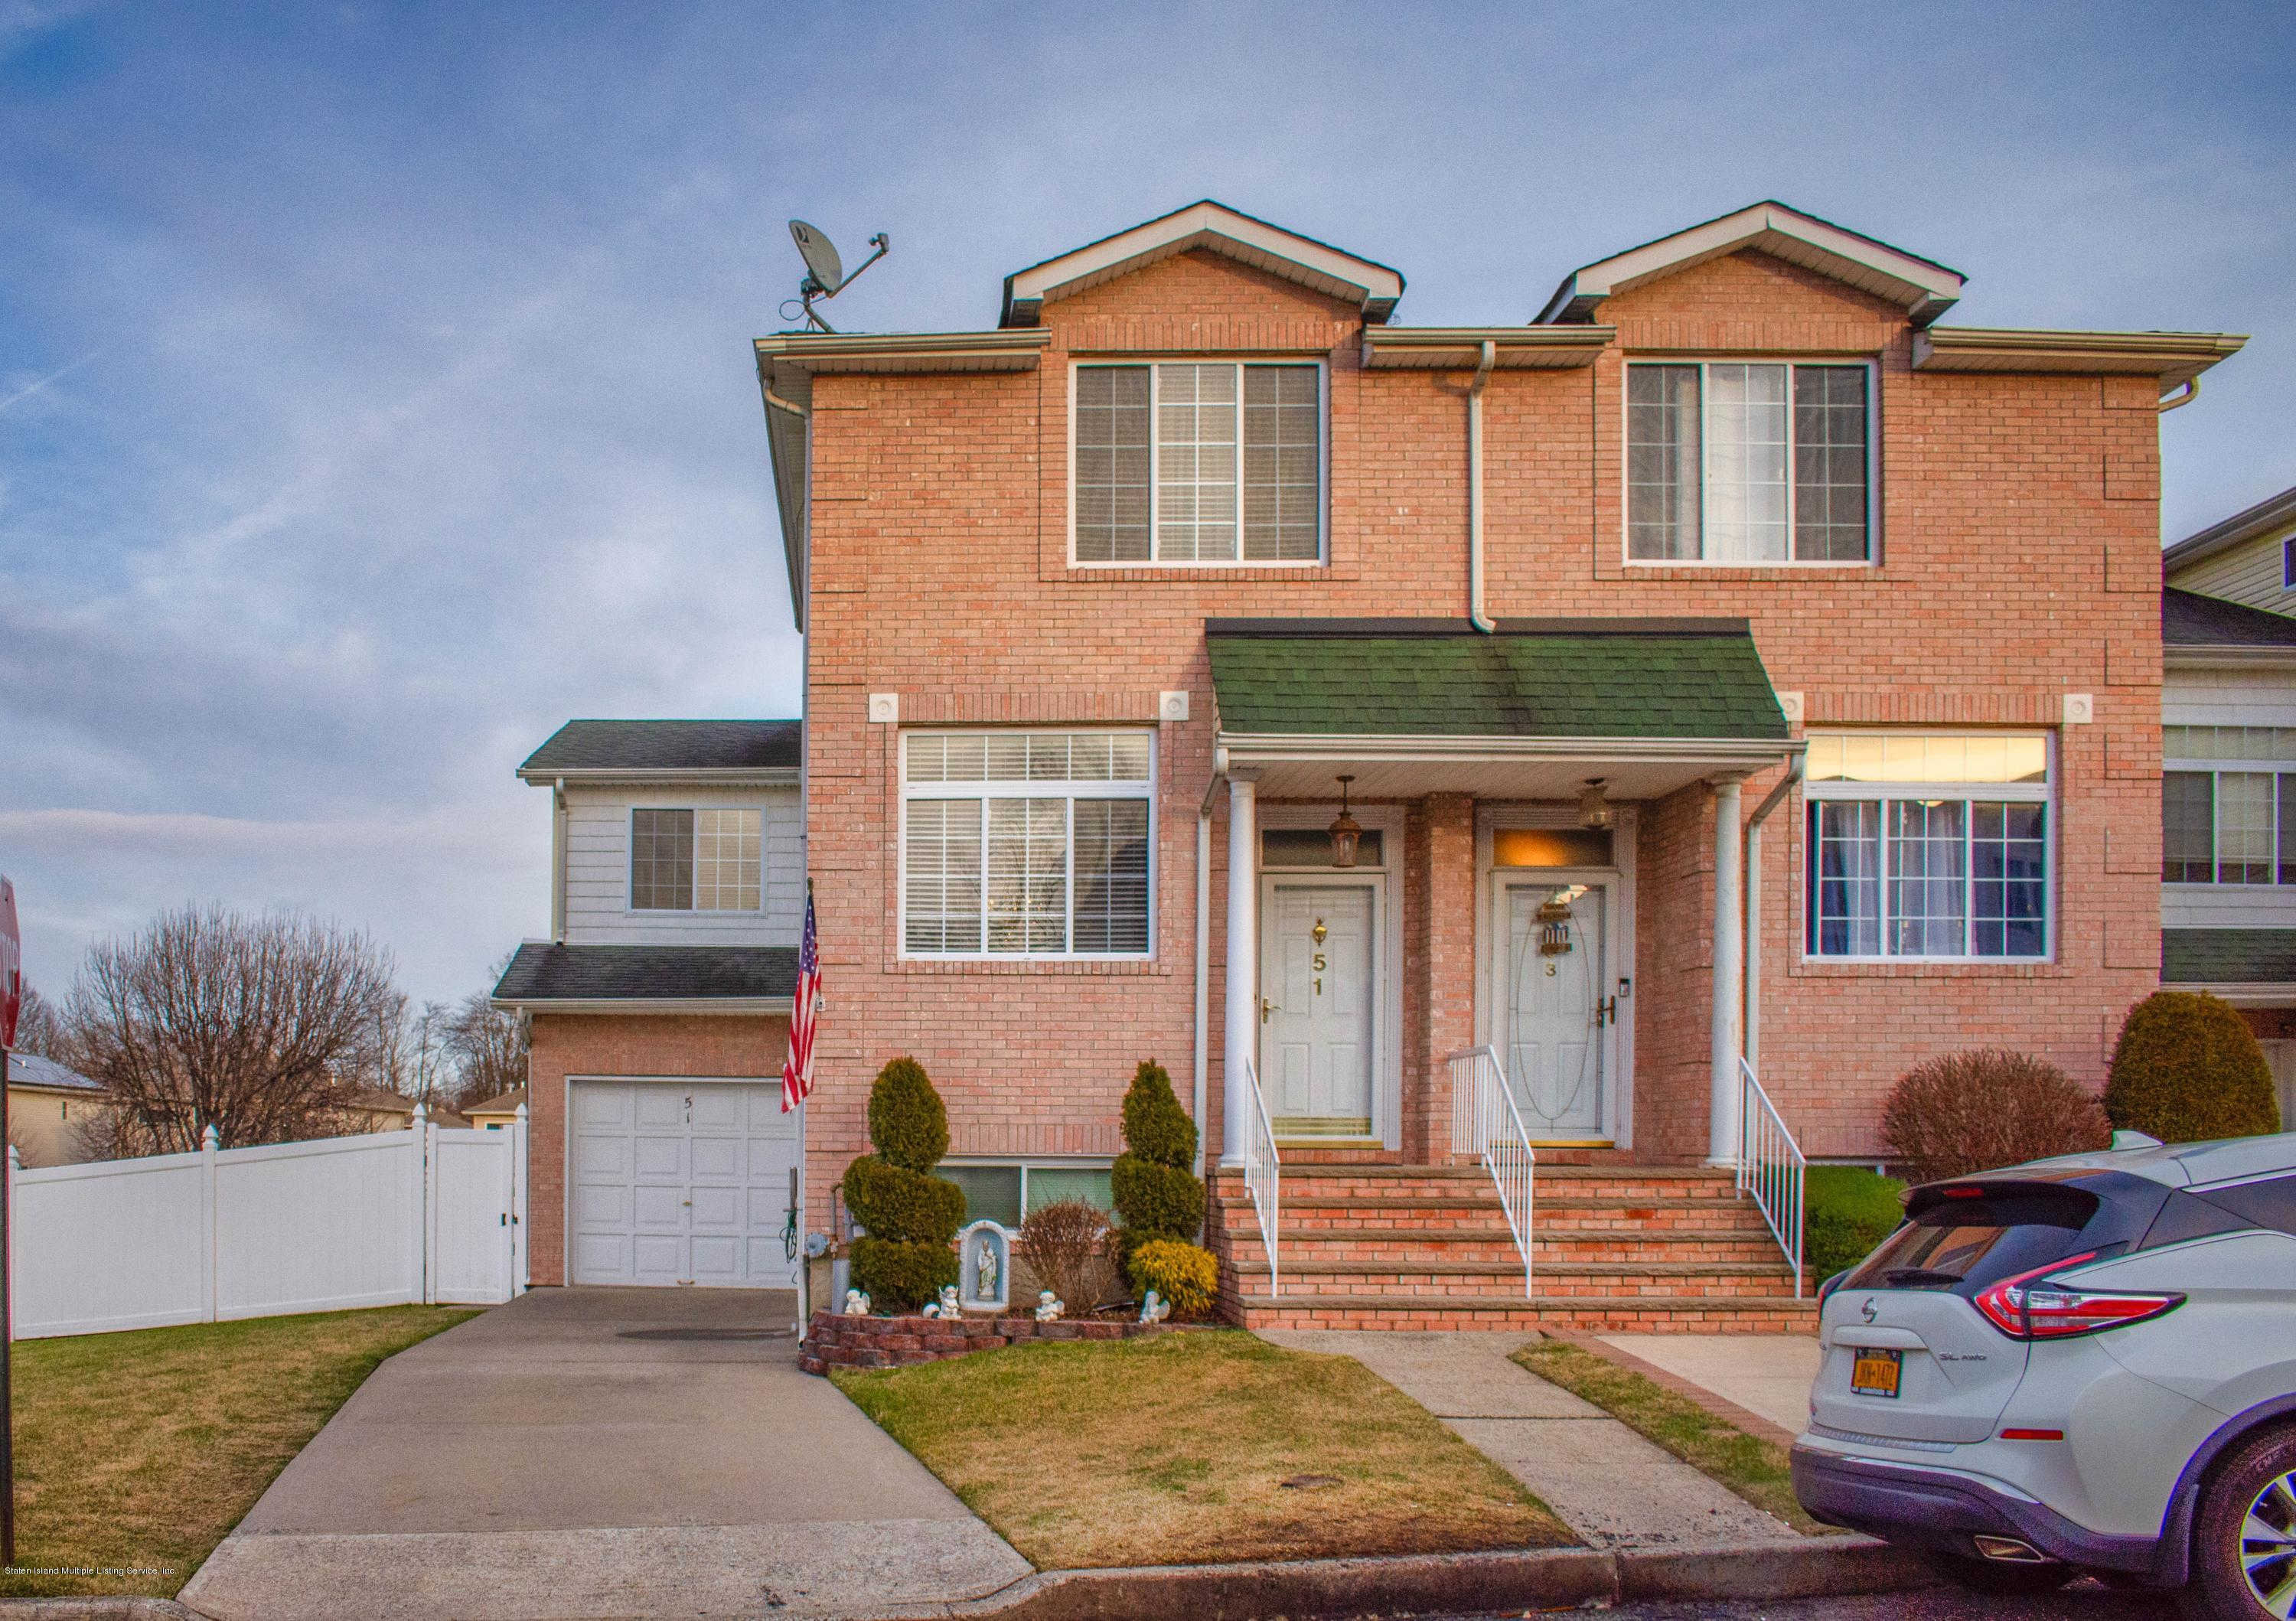 51 Dexter Avenue, Staten Island, NY 10309 now has a new price of $749,000!